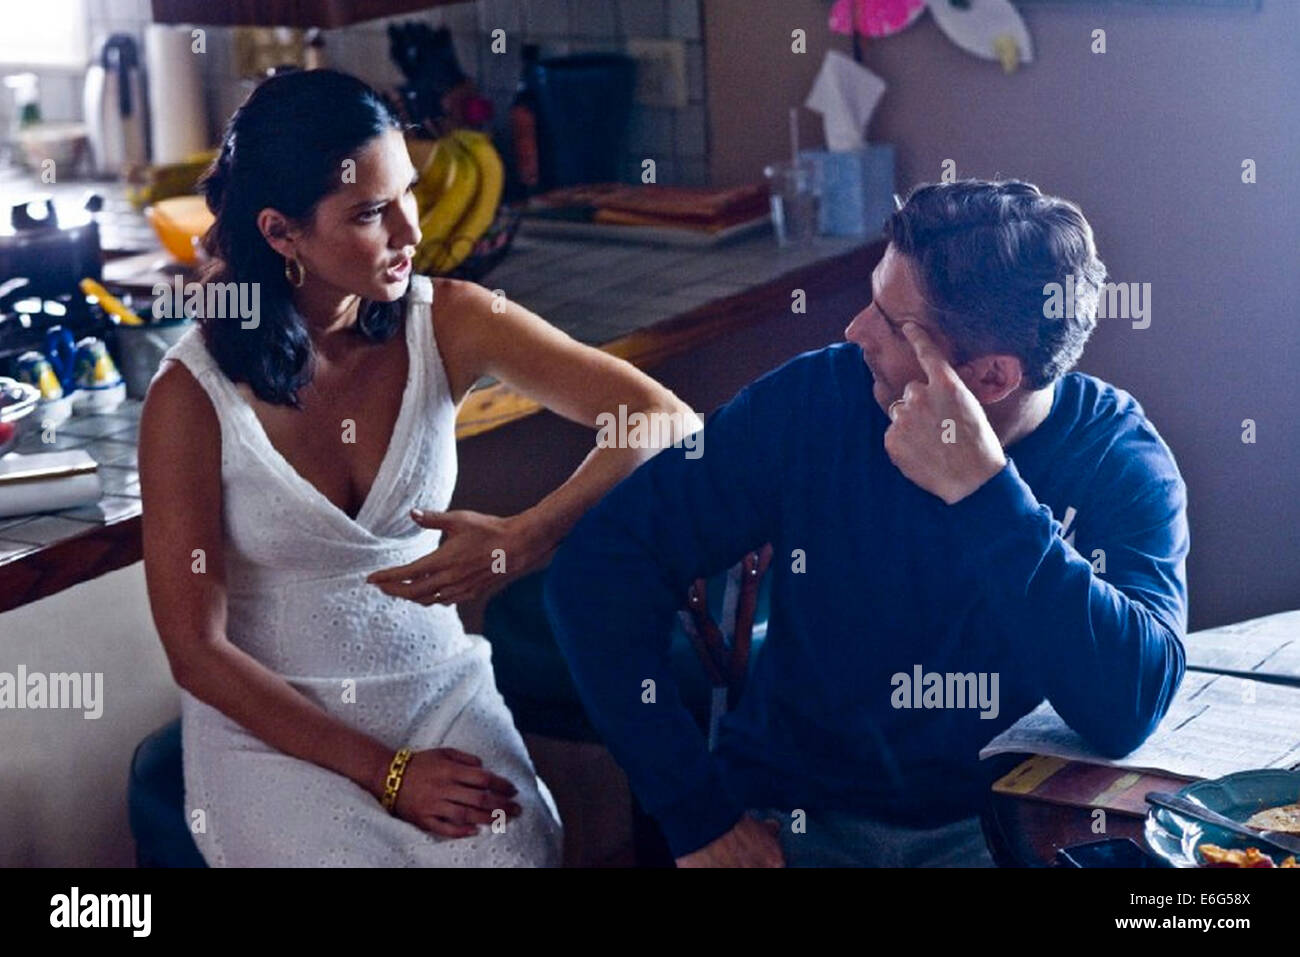 DELIVER US FROM EVIL 2014 Screen gems film with Olivia Munn and Eric Bana - Stock Image